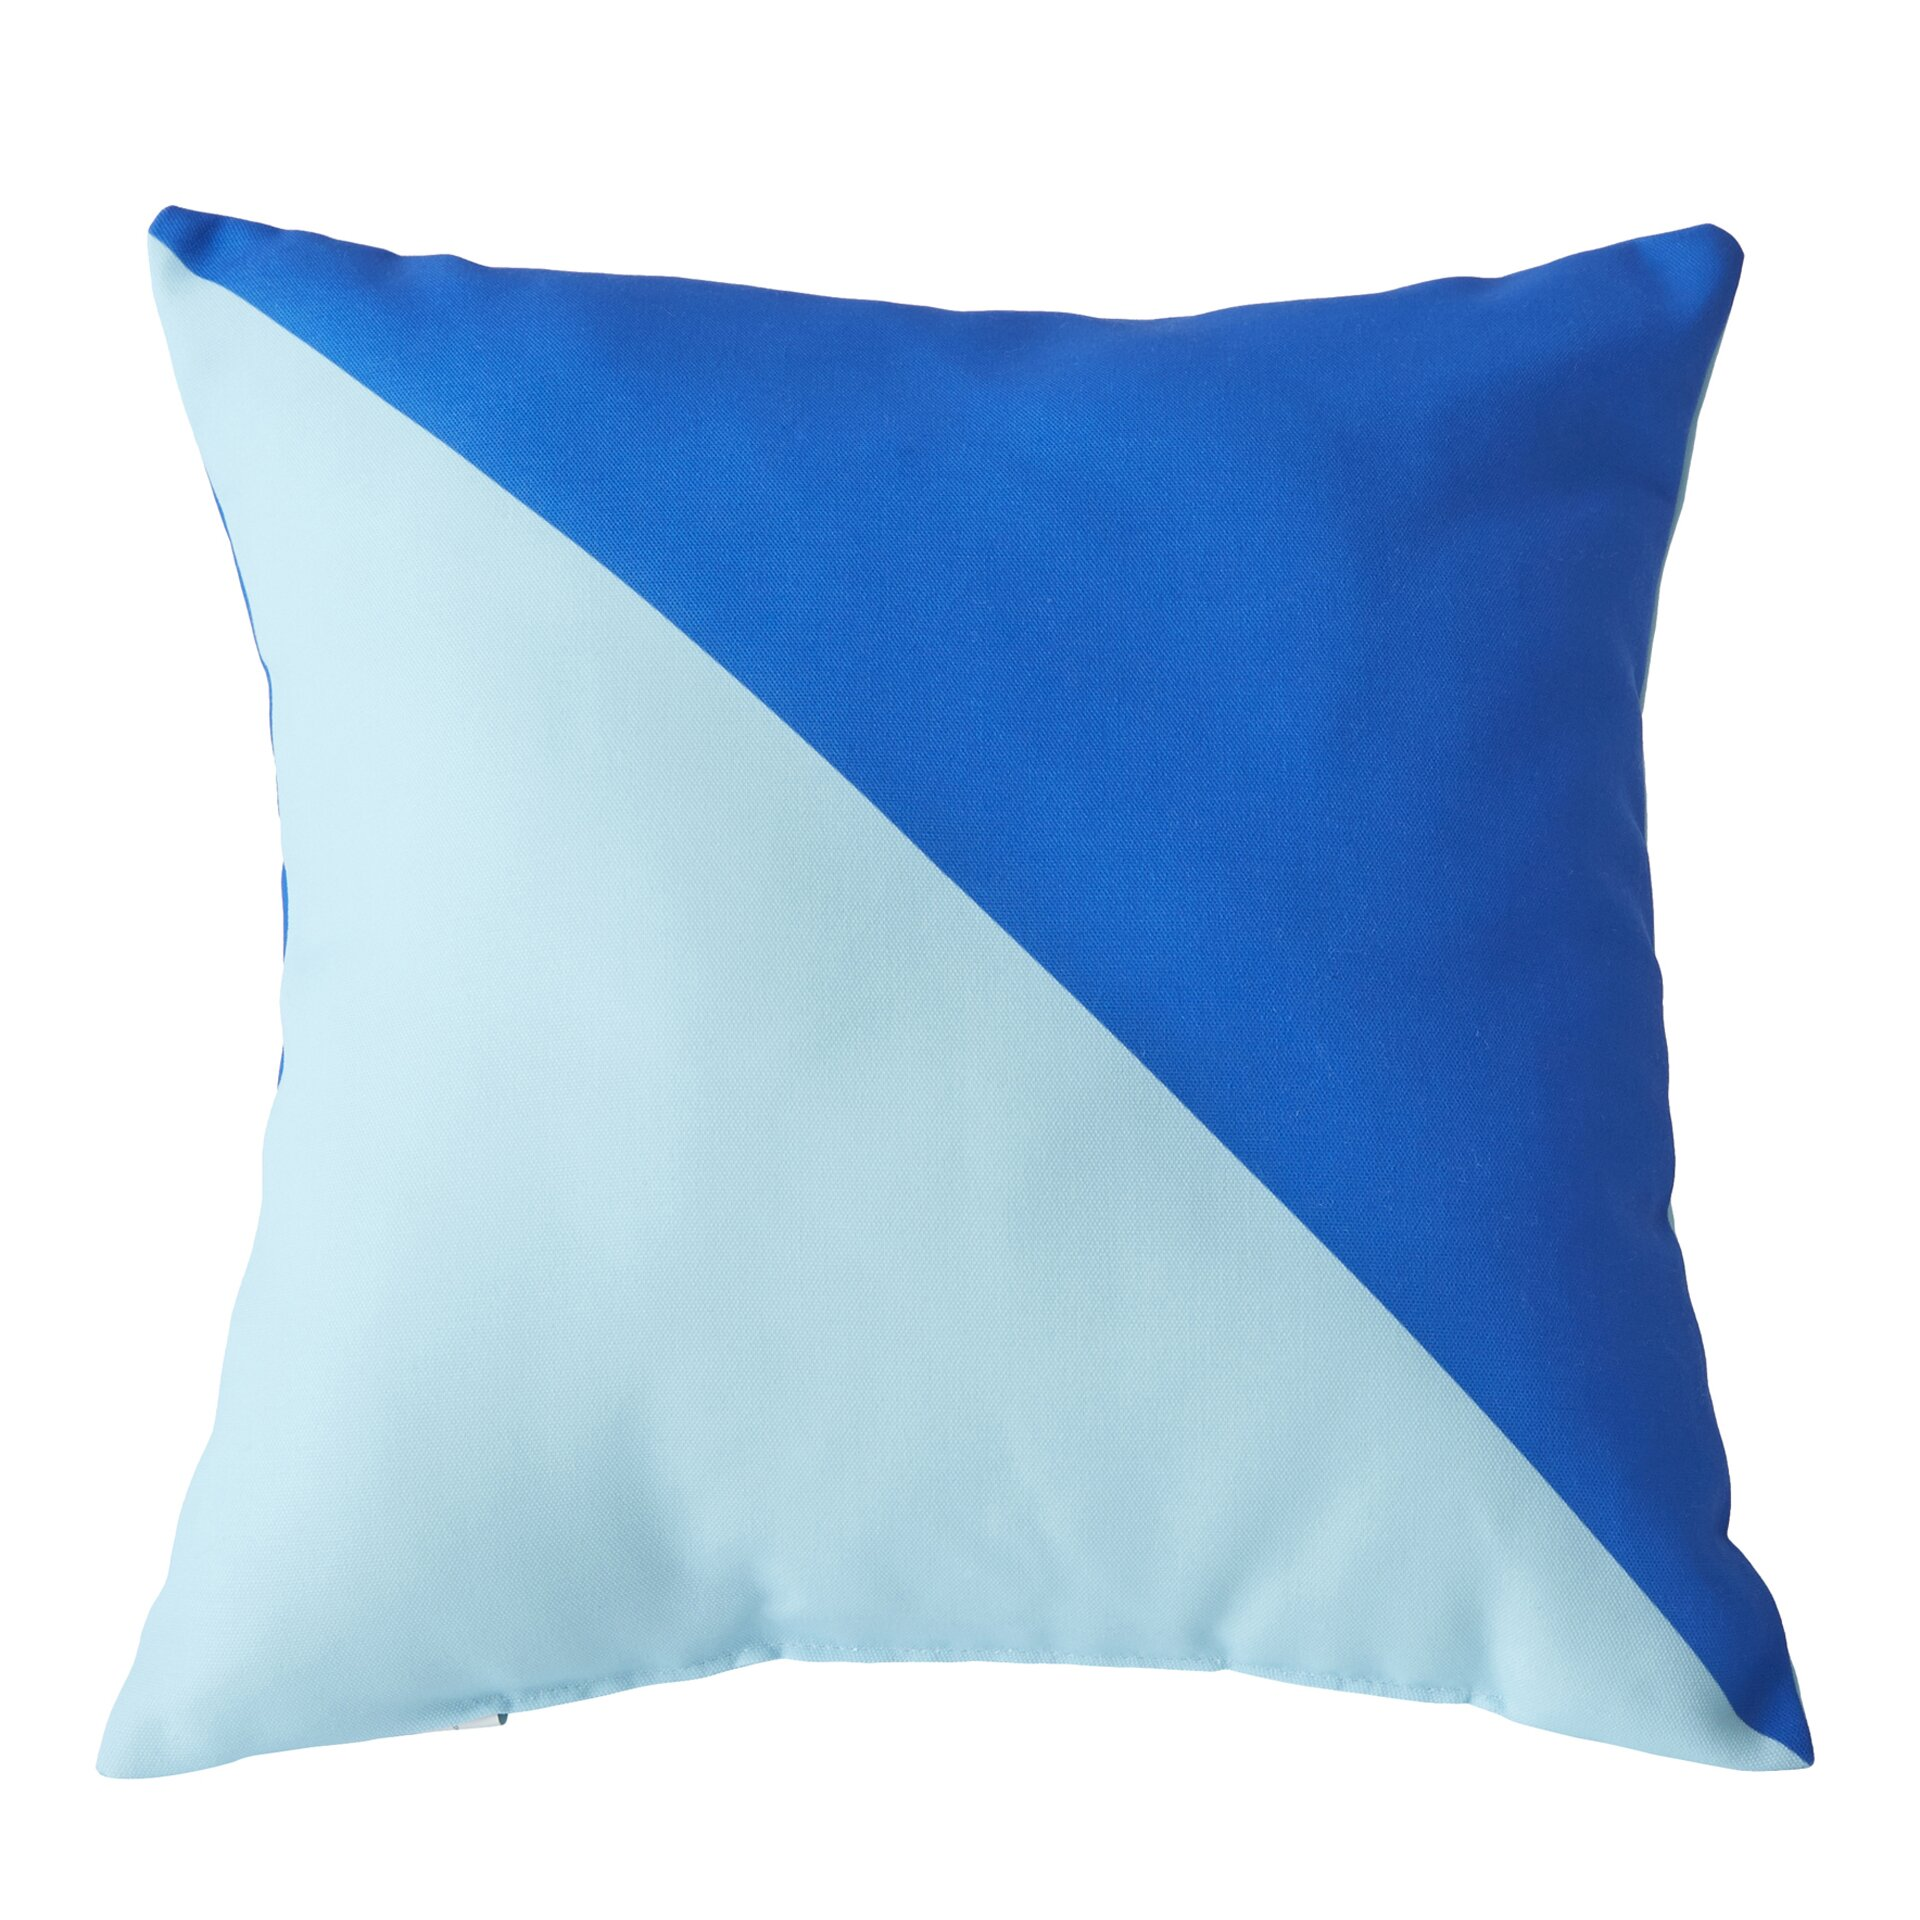 Throw Pillows The Bay : Breakwater Bay Cristina Split Colour Outdoor Throw Pillow & Reviews Wayfair.ca